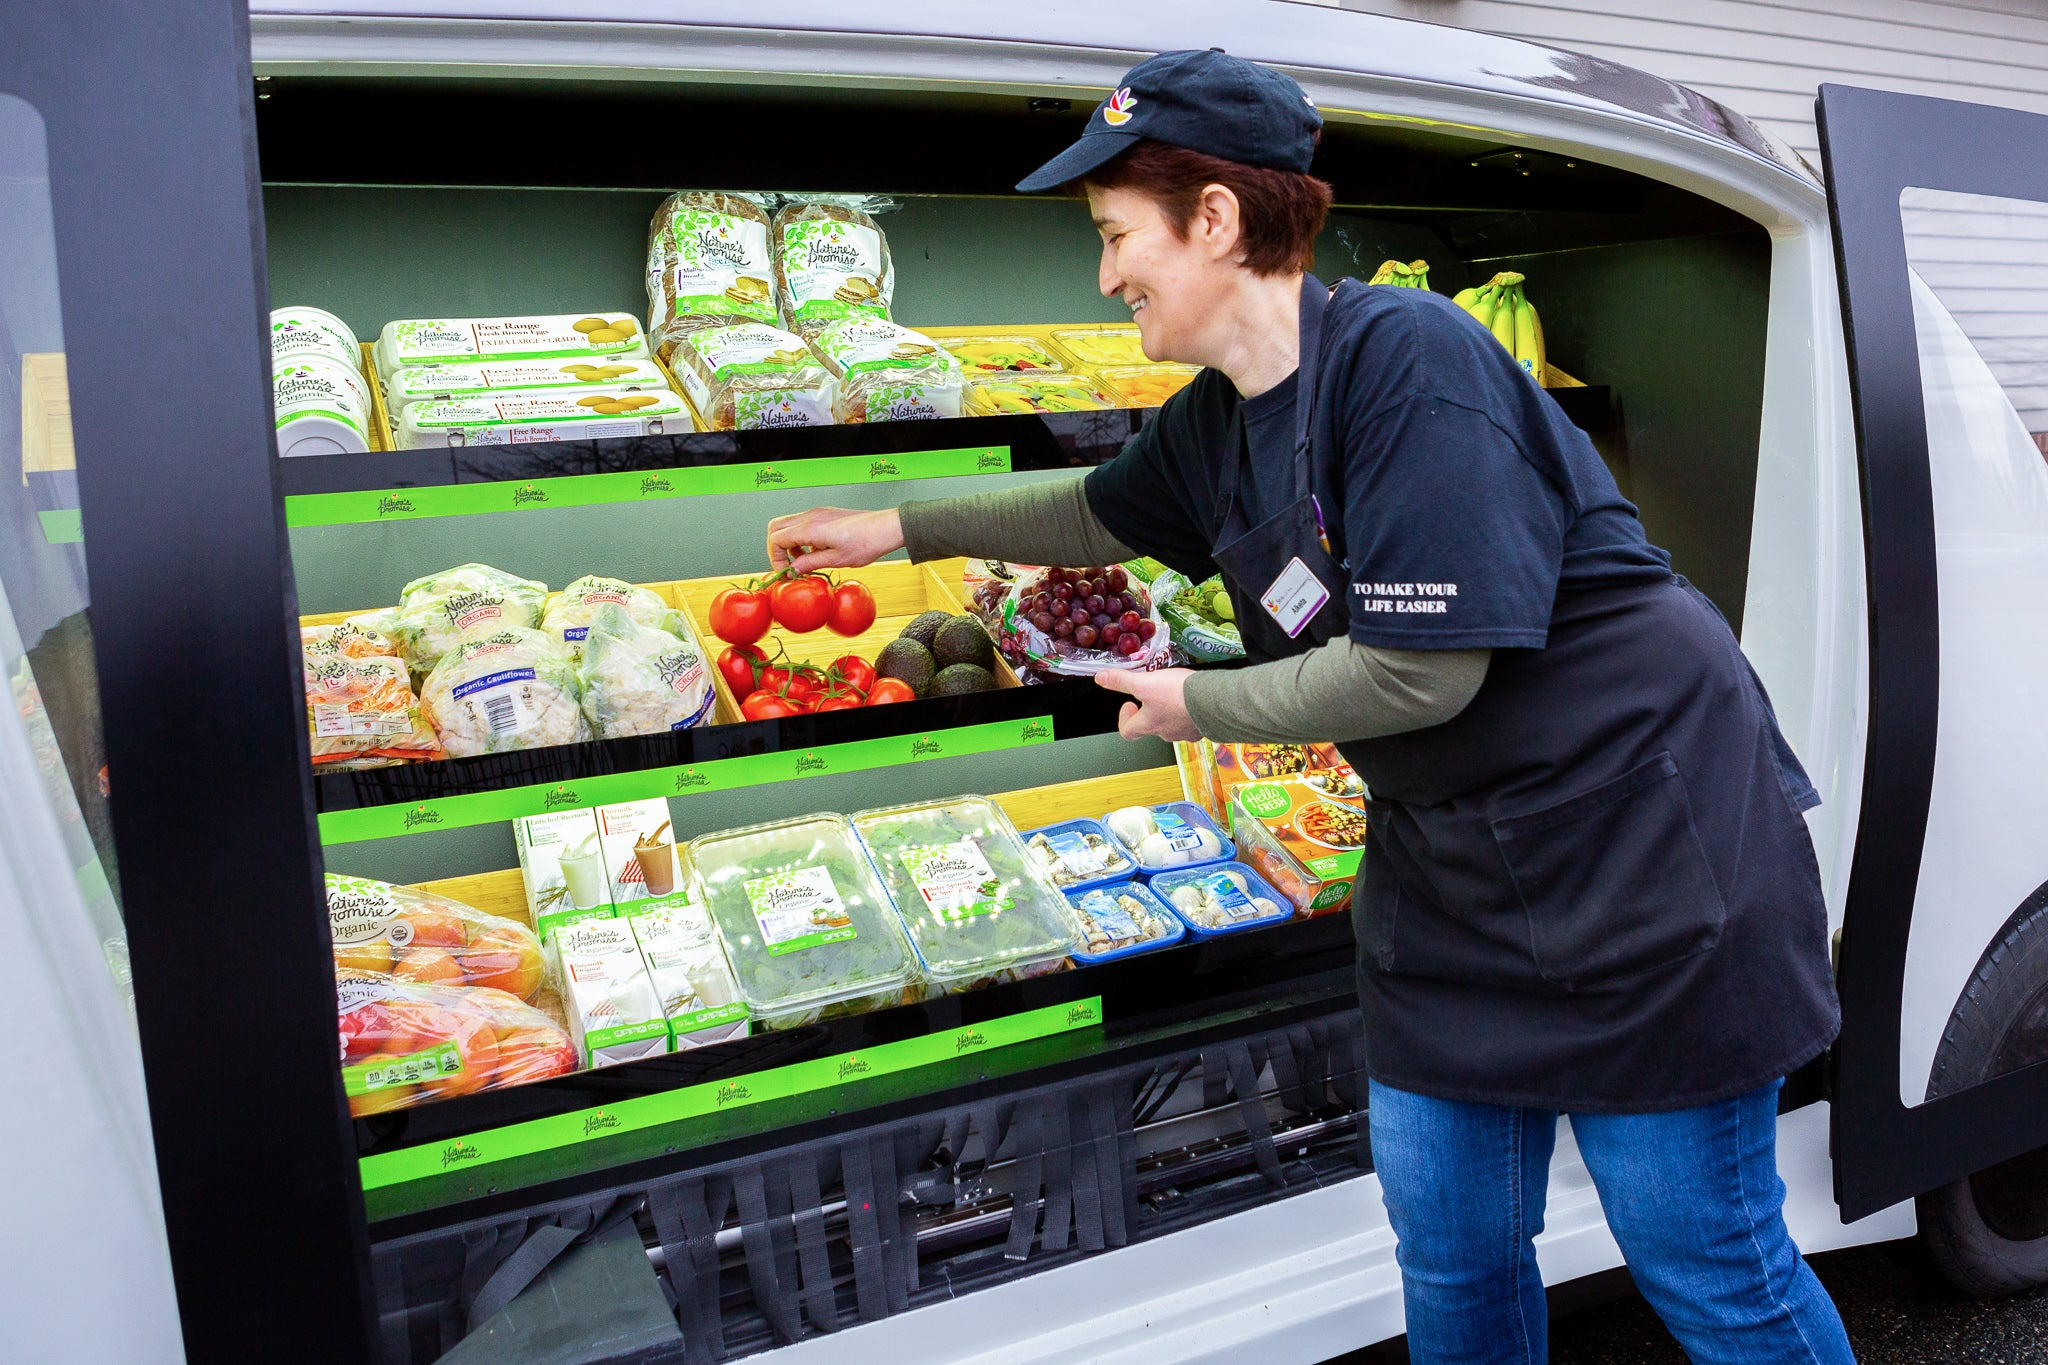 Stop & Shop plans to roll out 'driverless grocery stores' in Boston